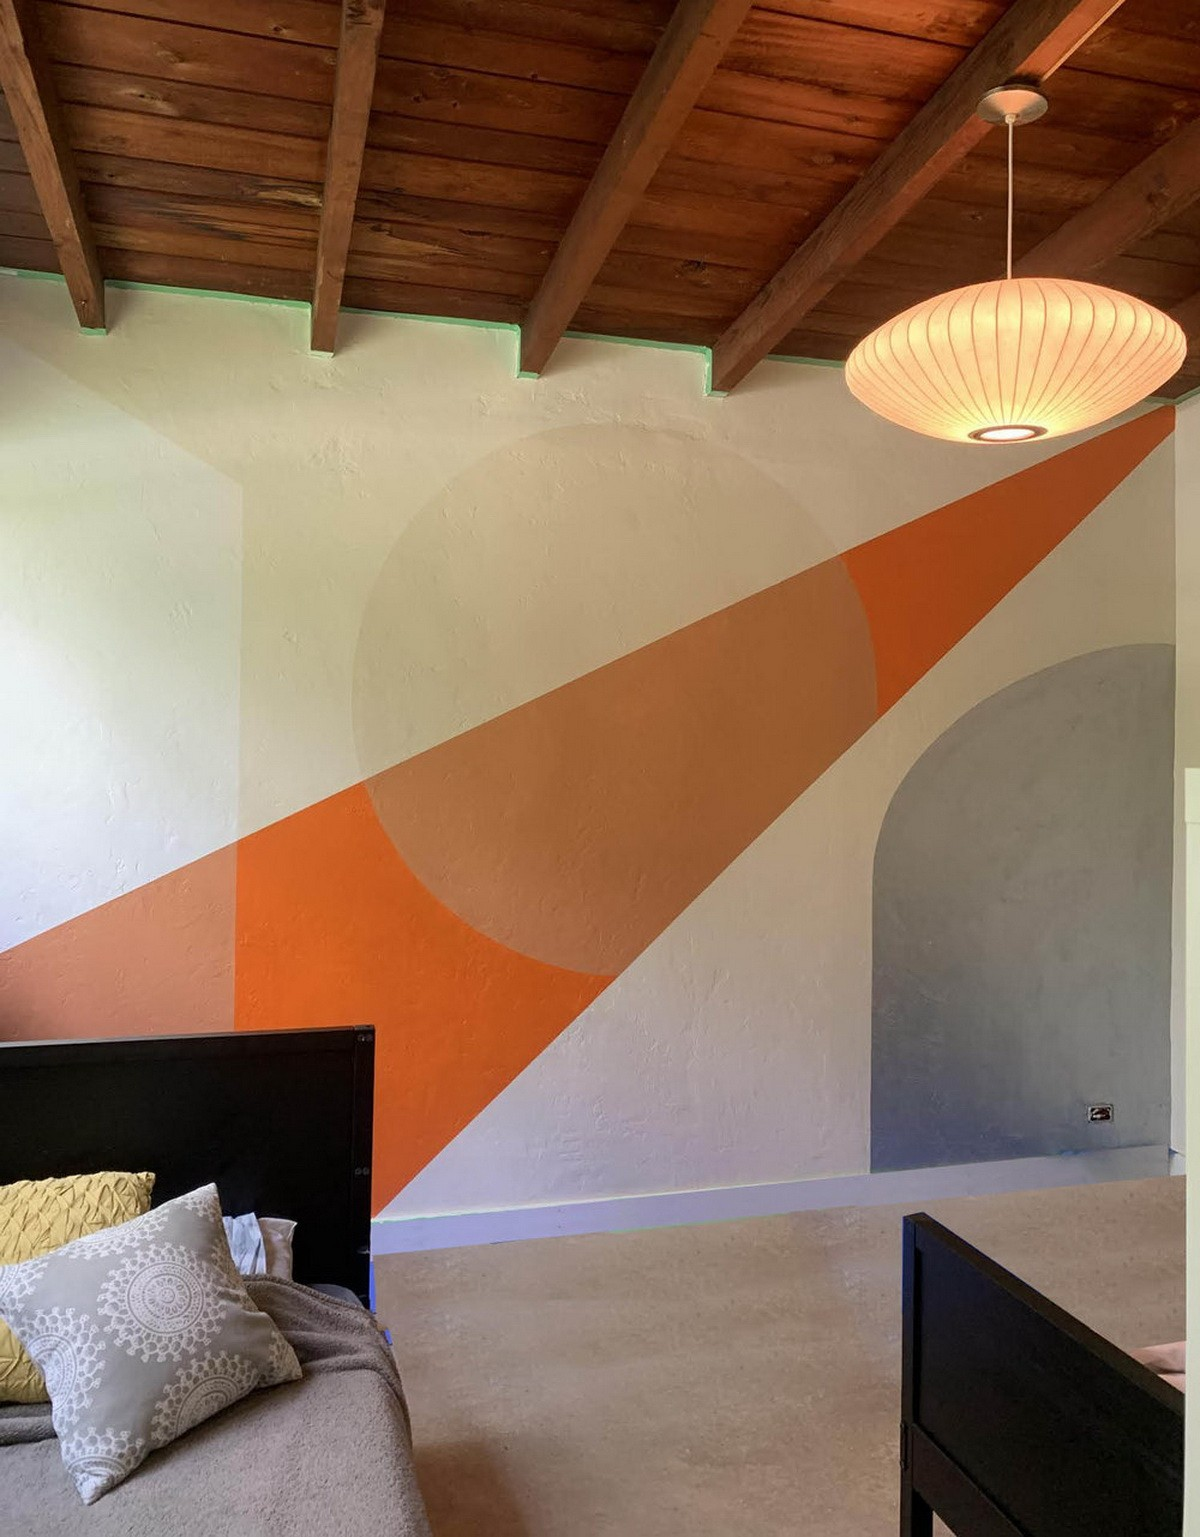 GEOMETRICA ABSTRACT VIVID COLORS MURAL IN A PENTHOUSE